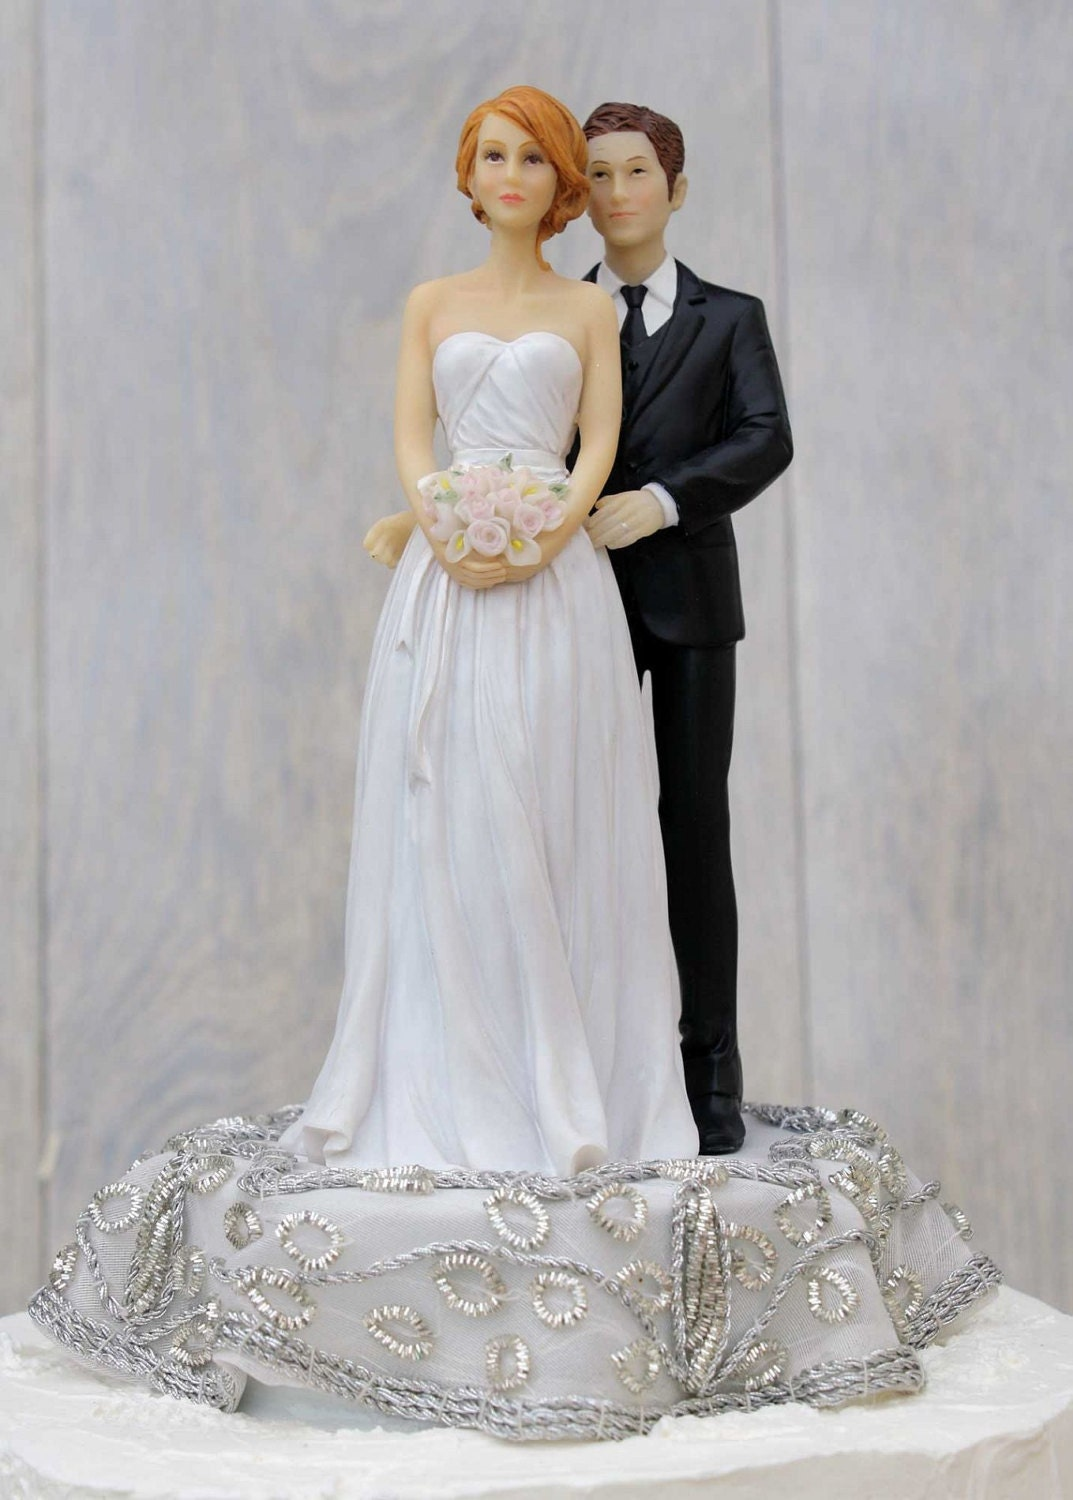 natural hair wedding cake toppers embroidered silver and groom wedding cake topper 17717